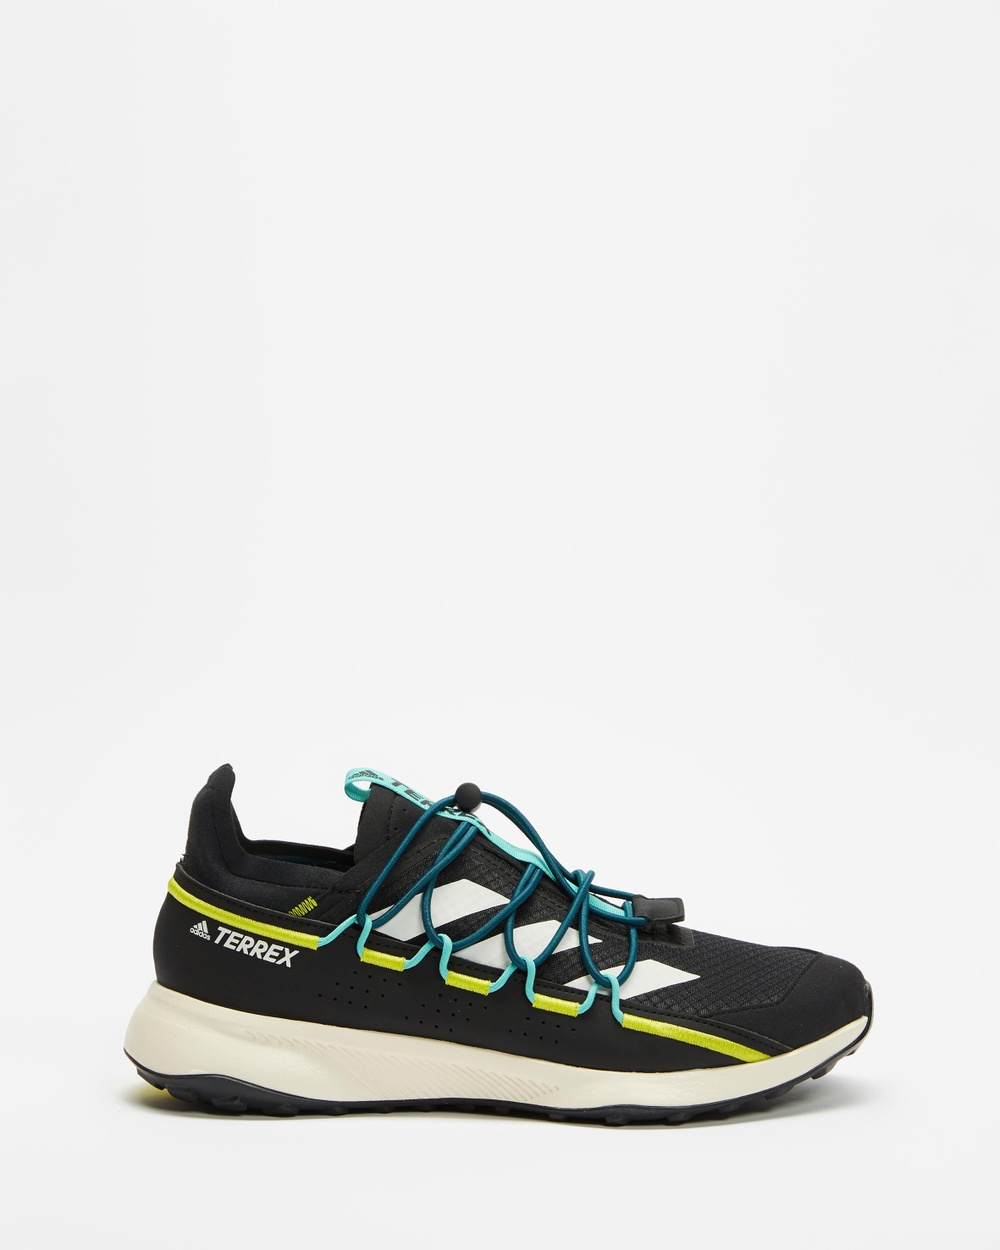 adidas Performance Terrex Voyager 21 HEAT.RDY Travel Shoes Outdoor Core Black, Chalk White & Acid Mint